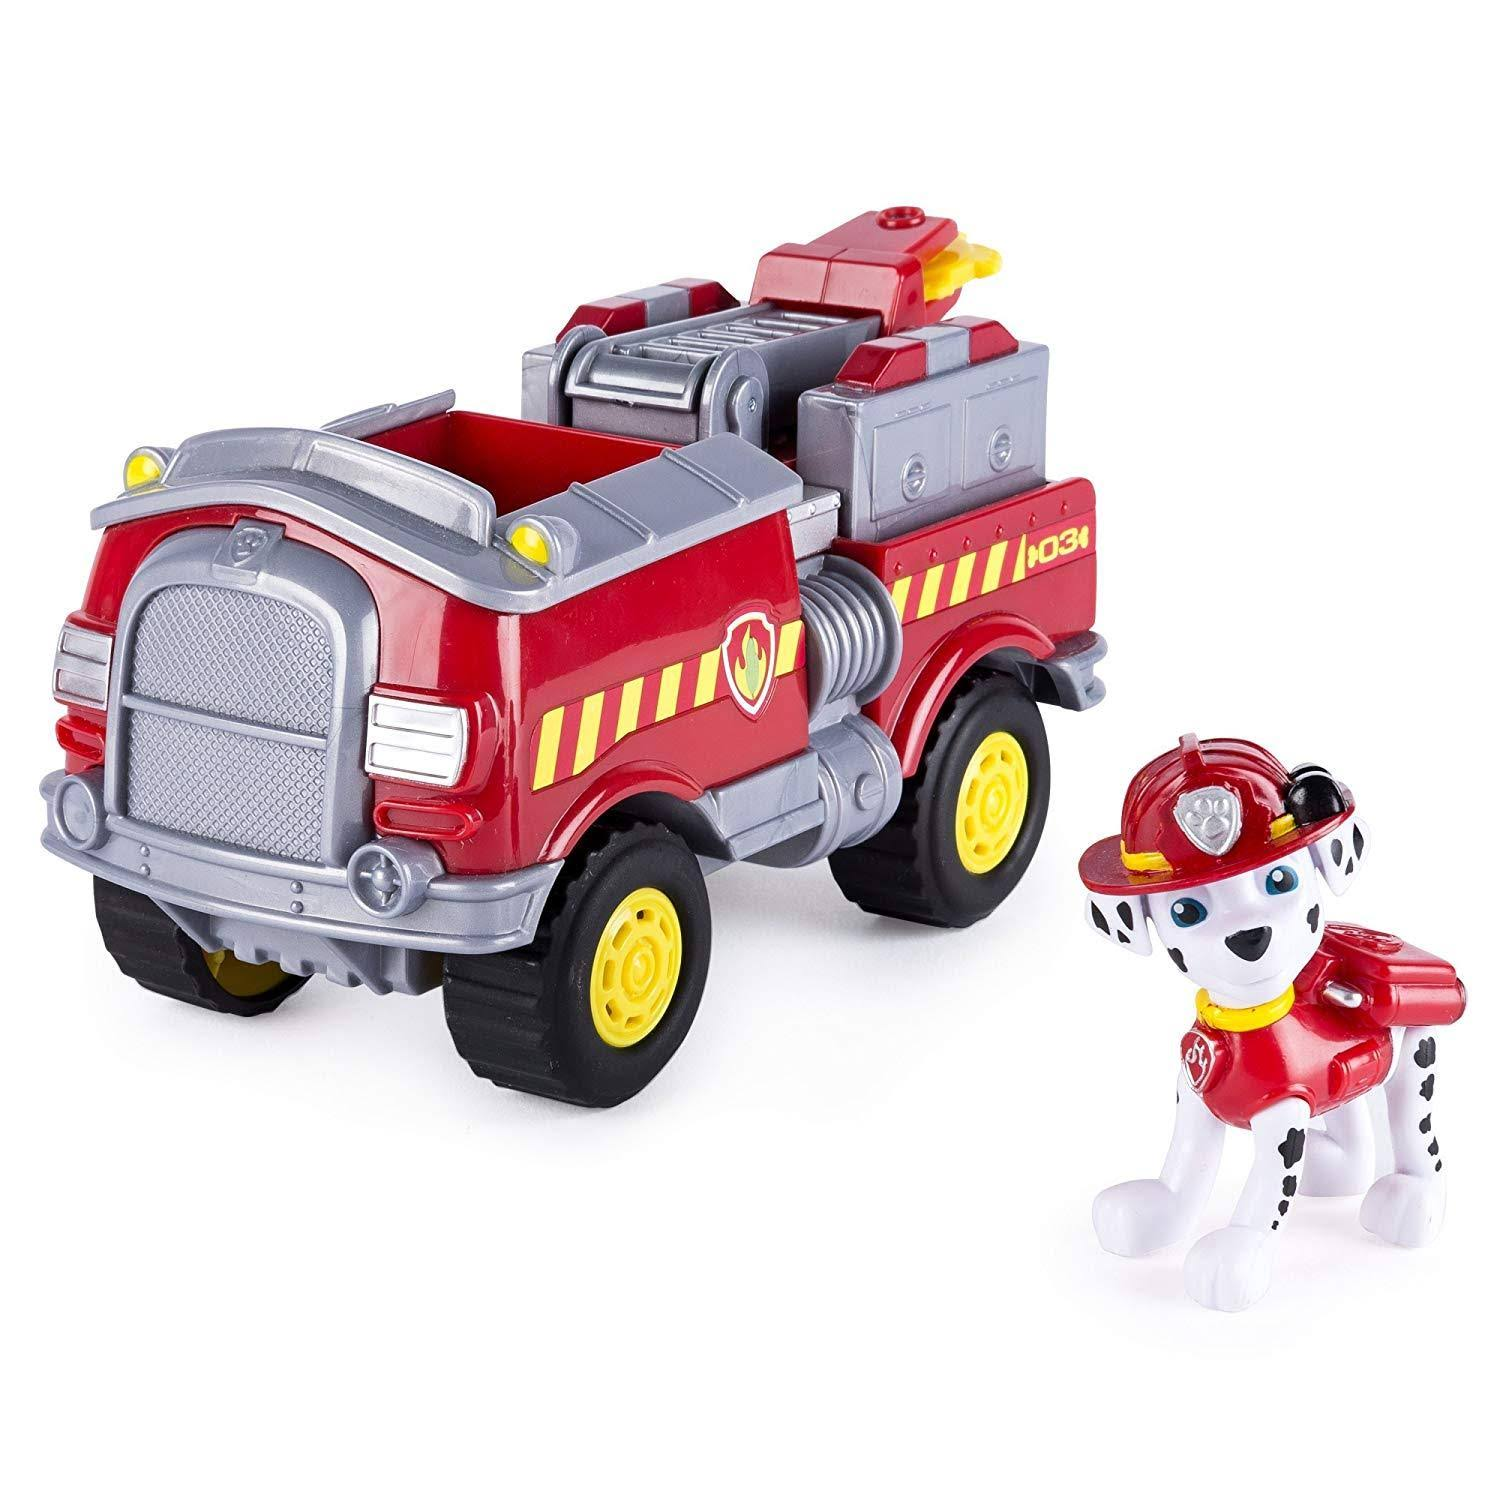 Paw Patrol Marshall's Forest Fire Vehicle Model